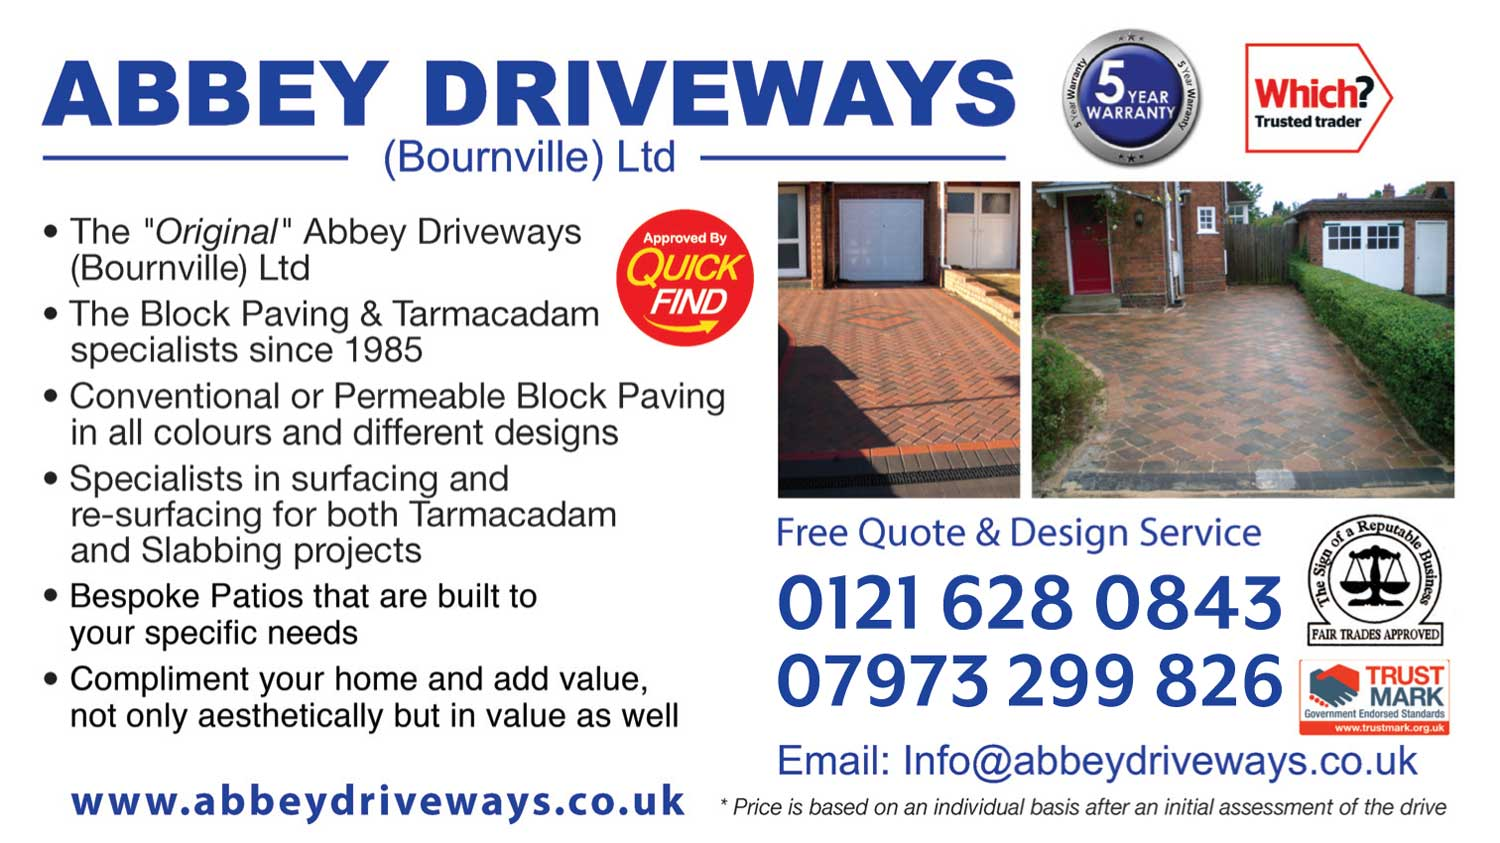 Abbey Driveways Bournville Ltd